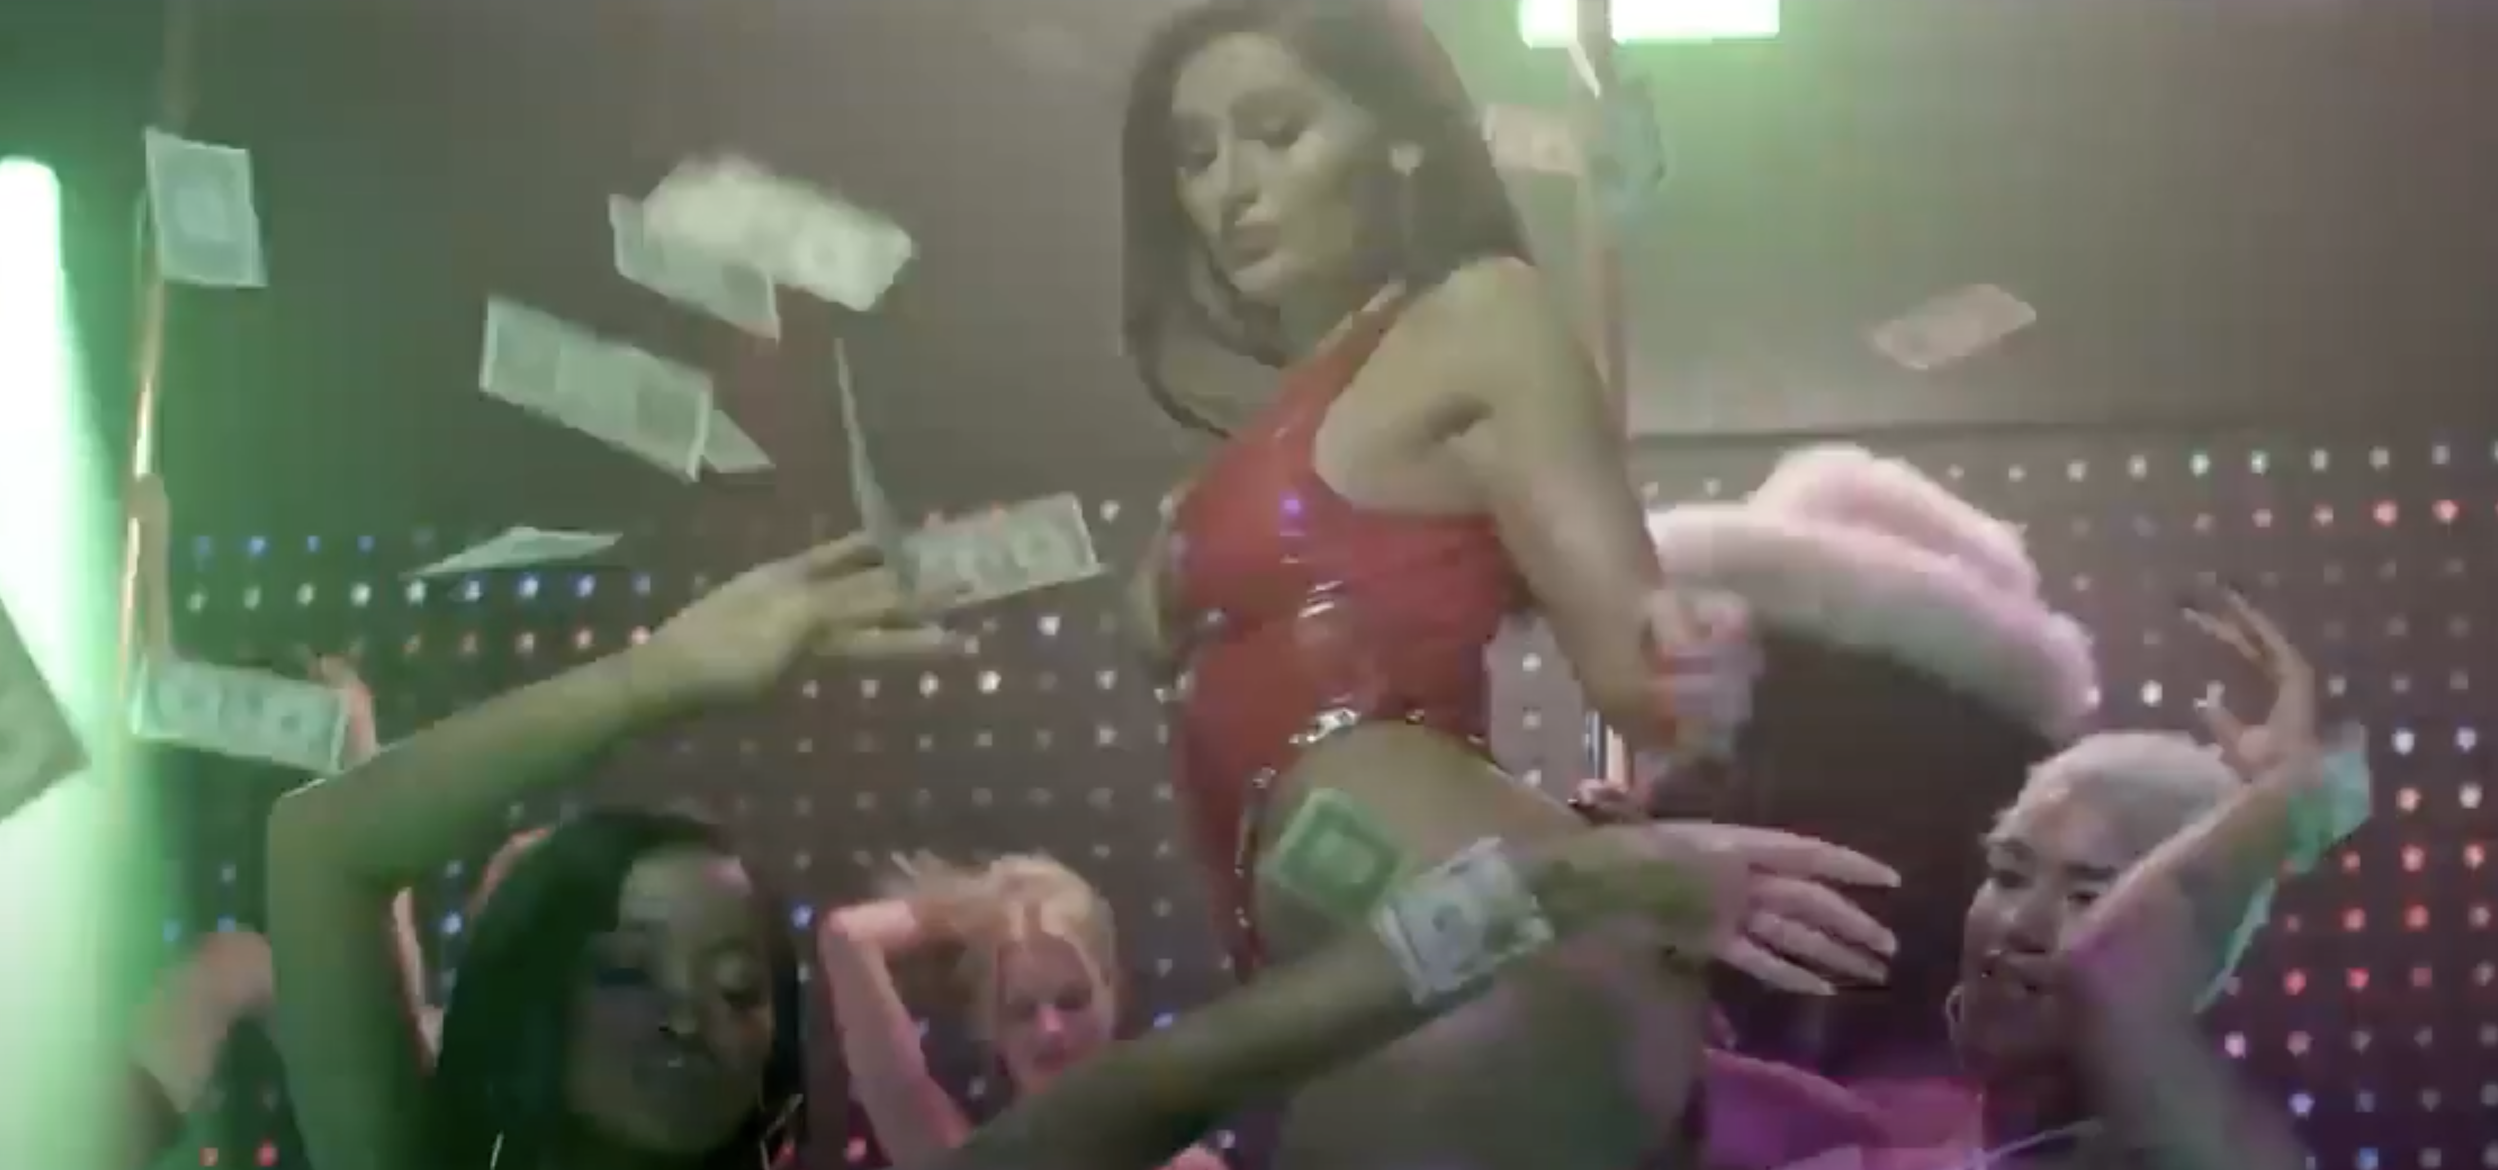 A group of women onstage while money rains down on them